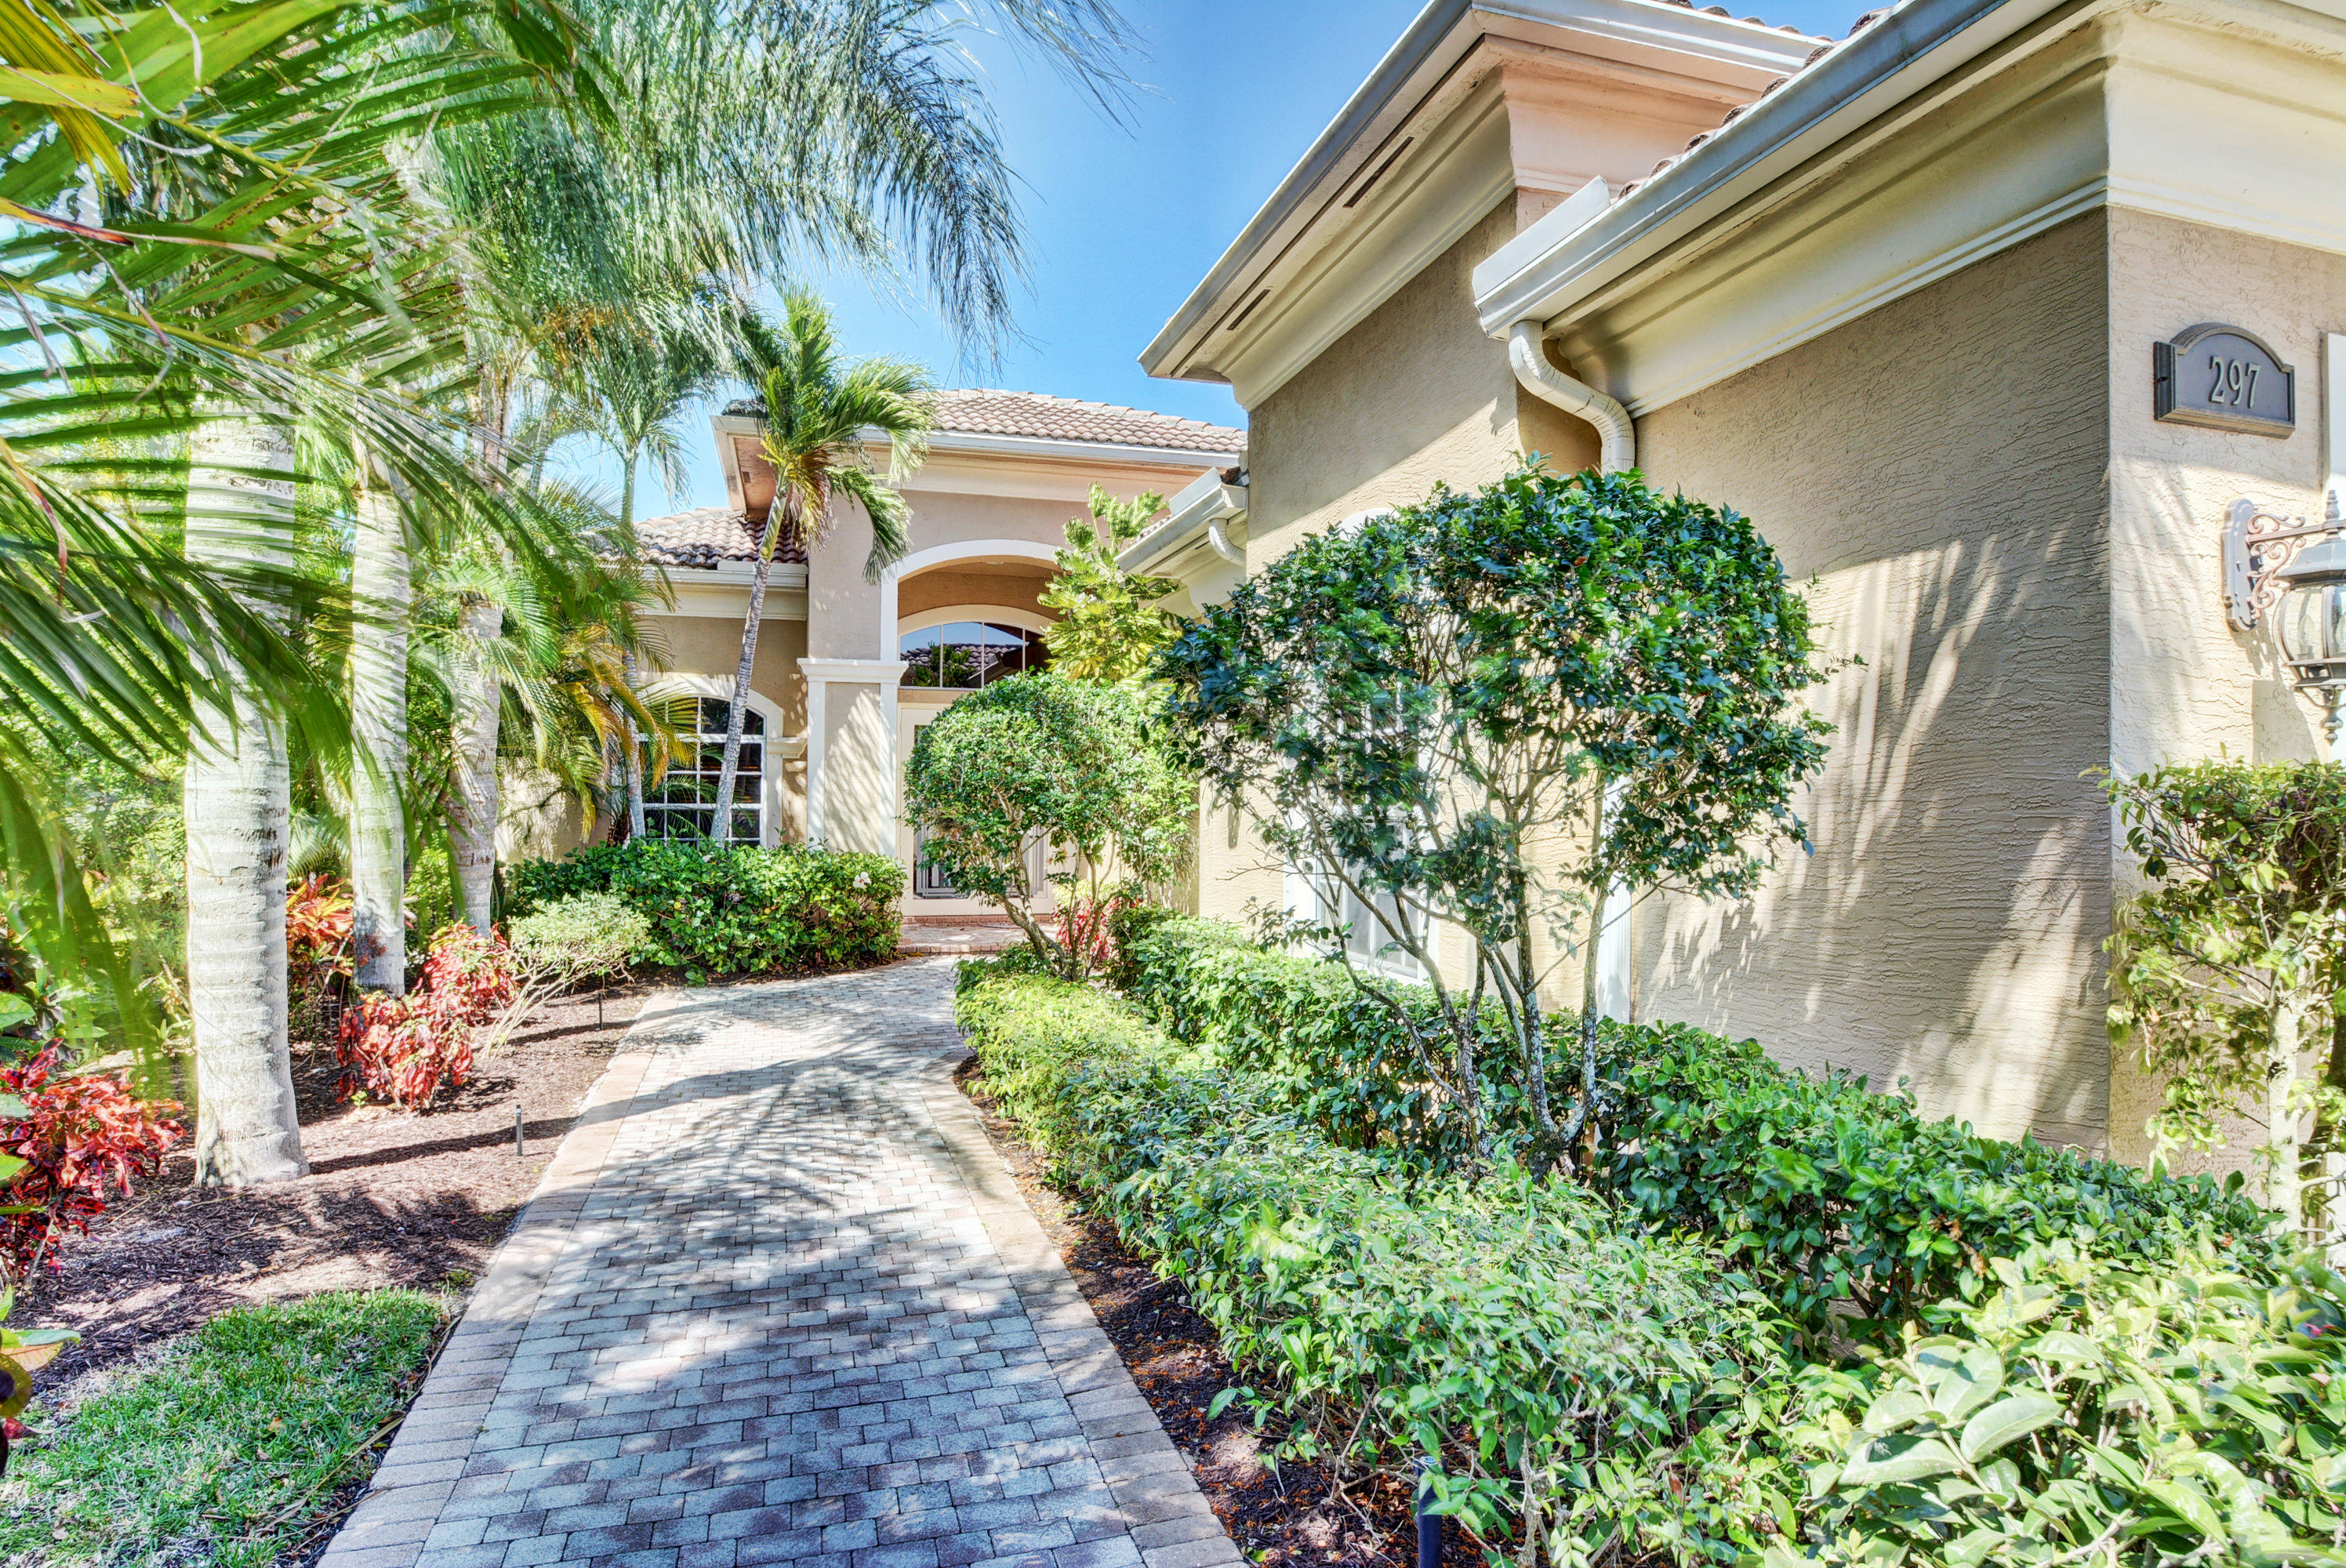 297 Porto Vecchio Way, Palm Beach Gardens MLS Listing RX-10416376 ...